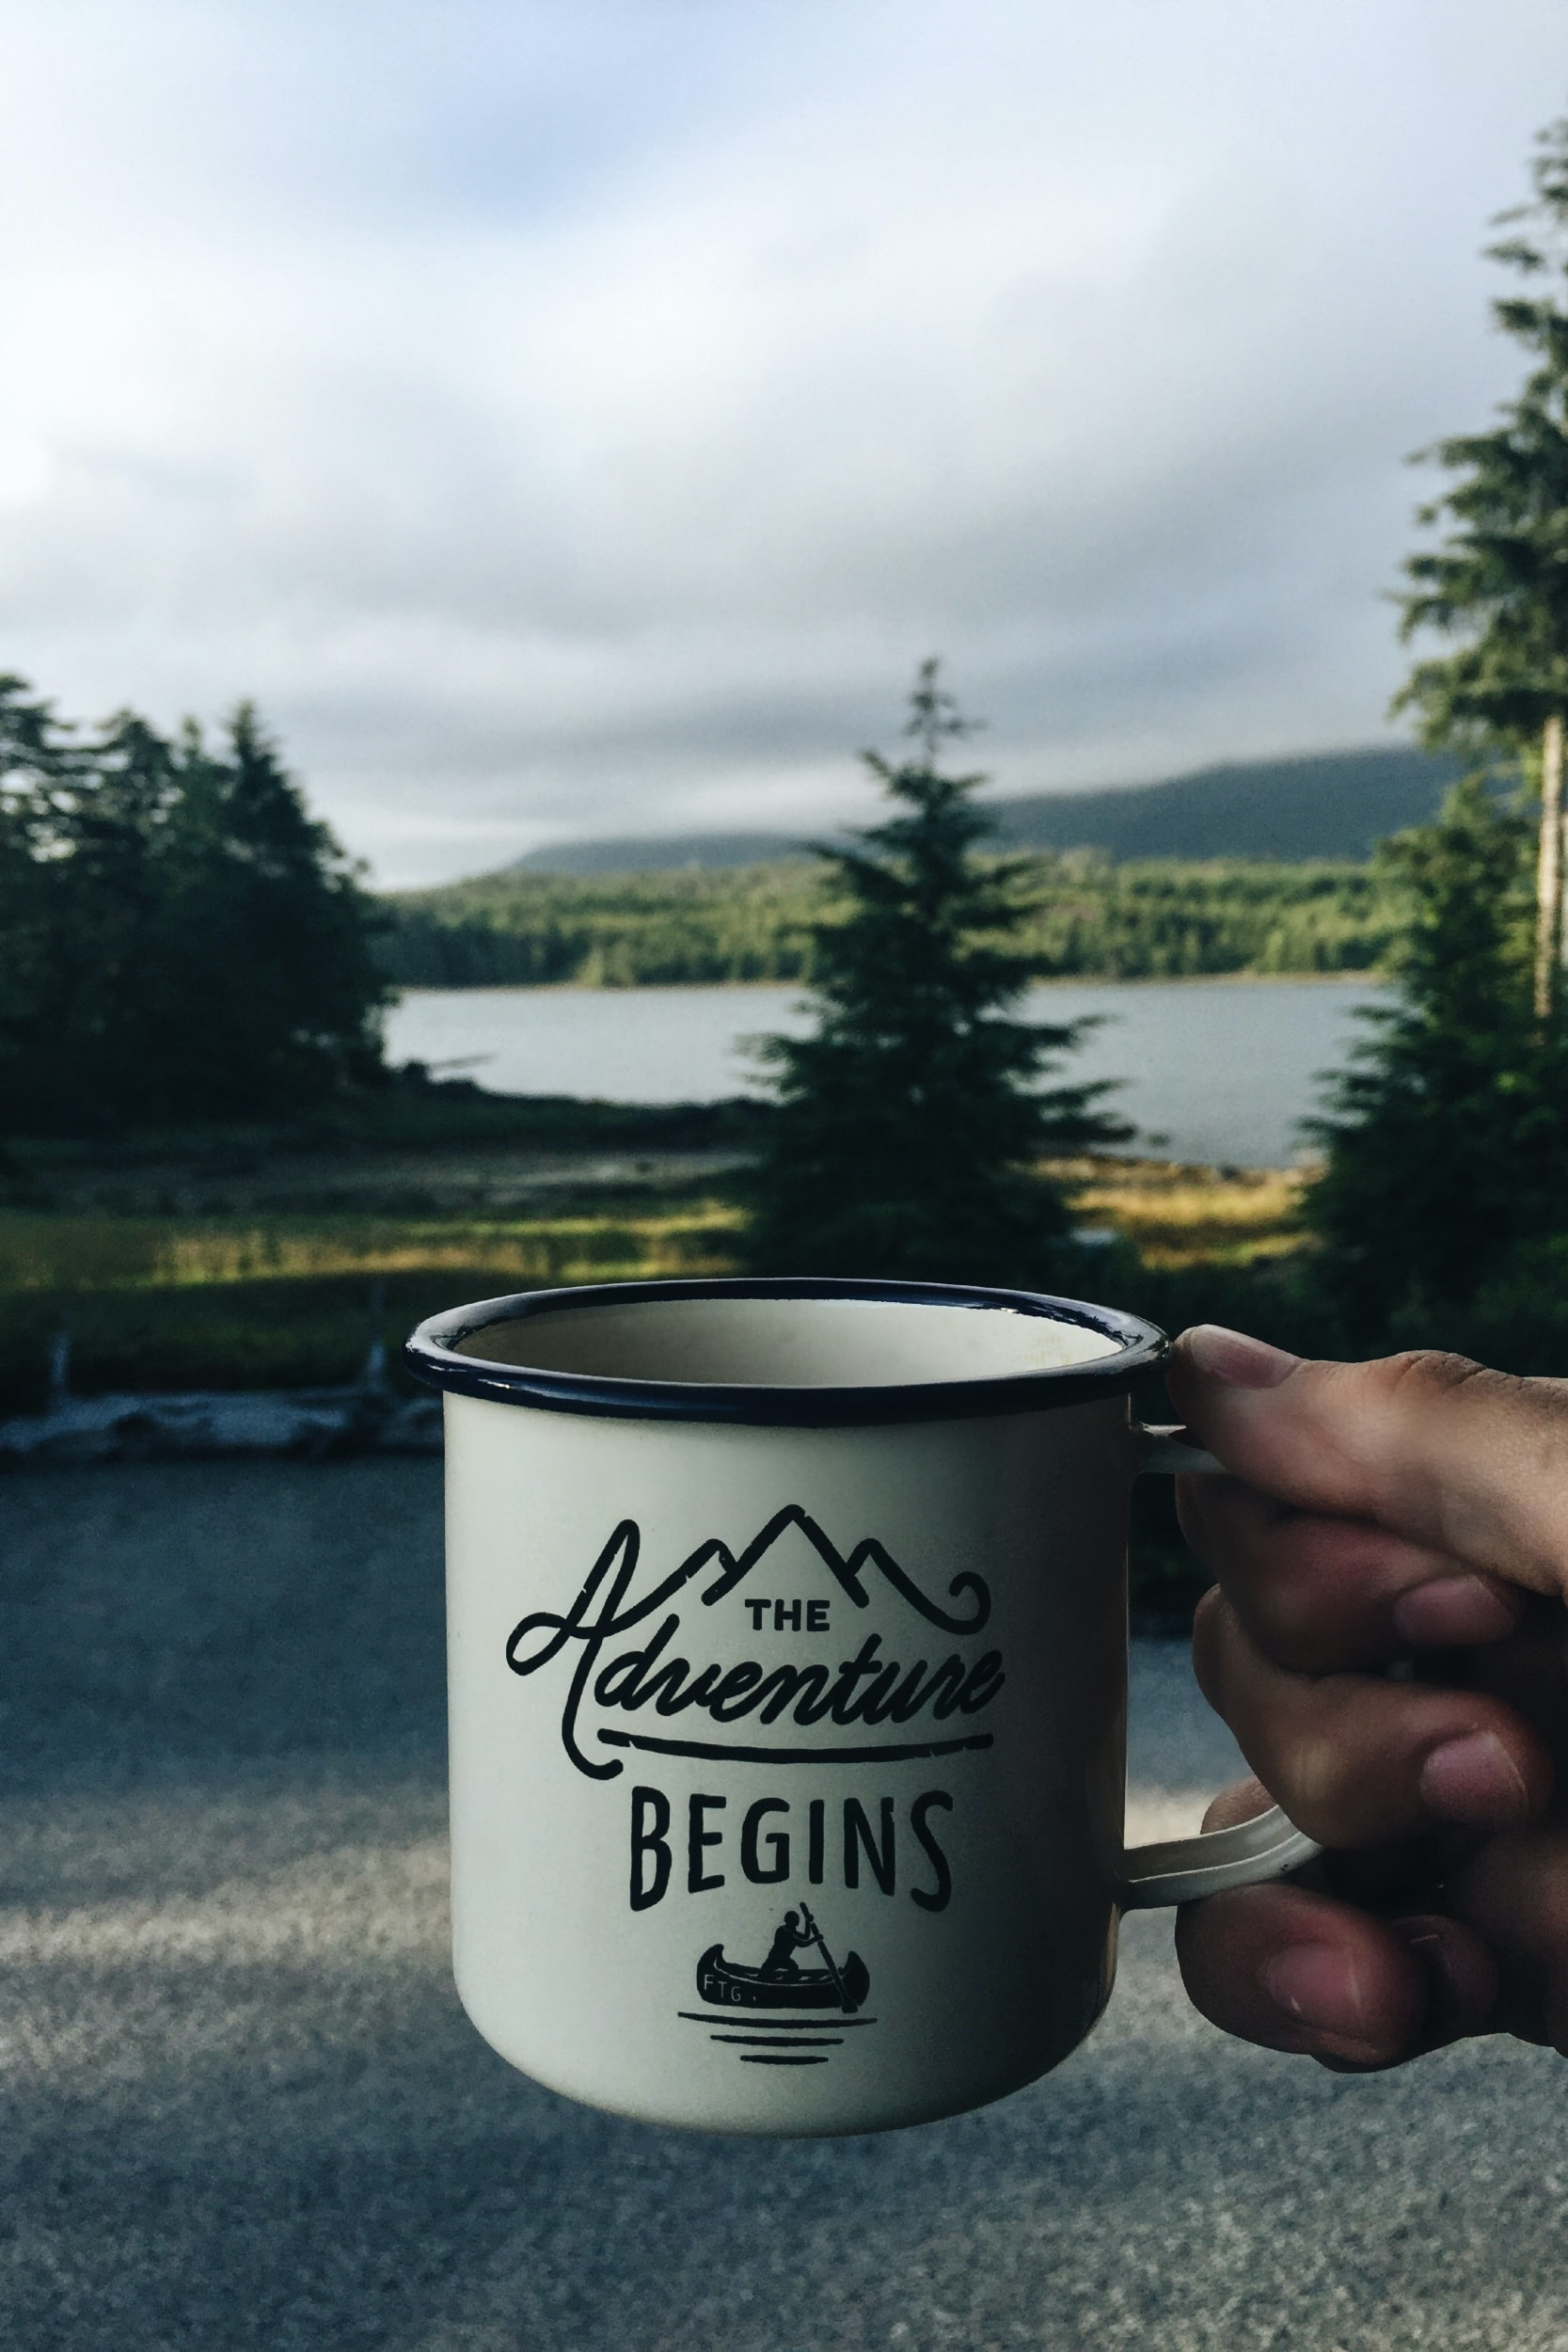 A hand holding a coffee mug in front of a road, pine trees, and river in Vancouver